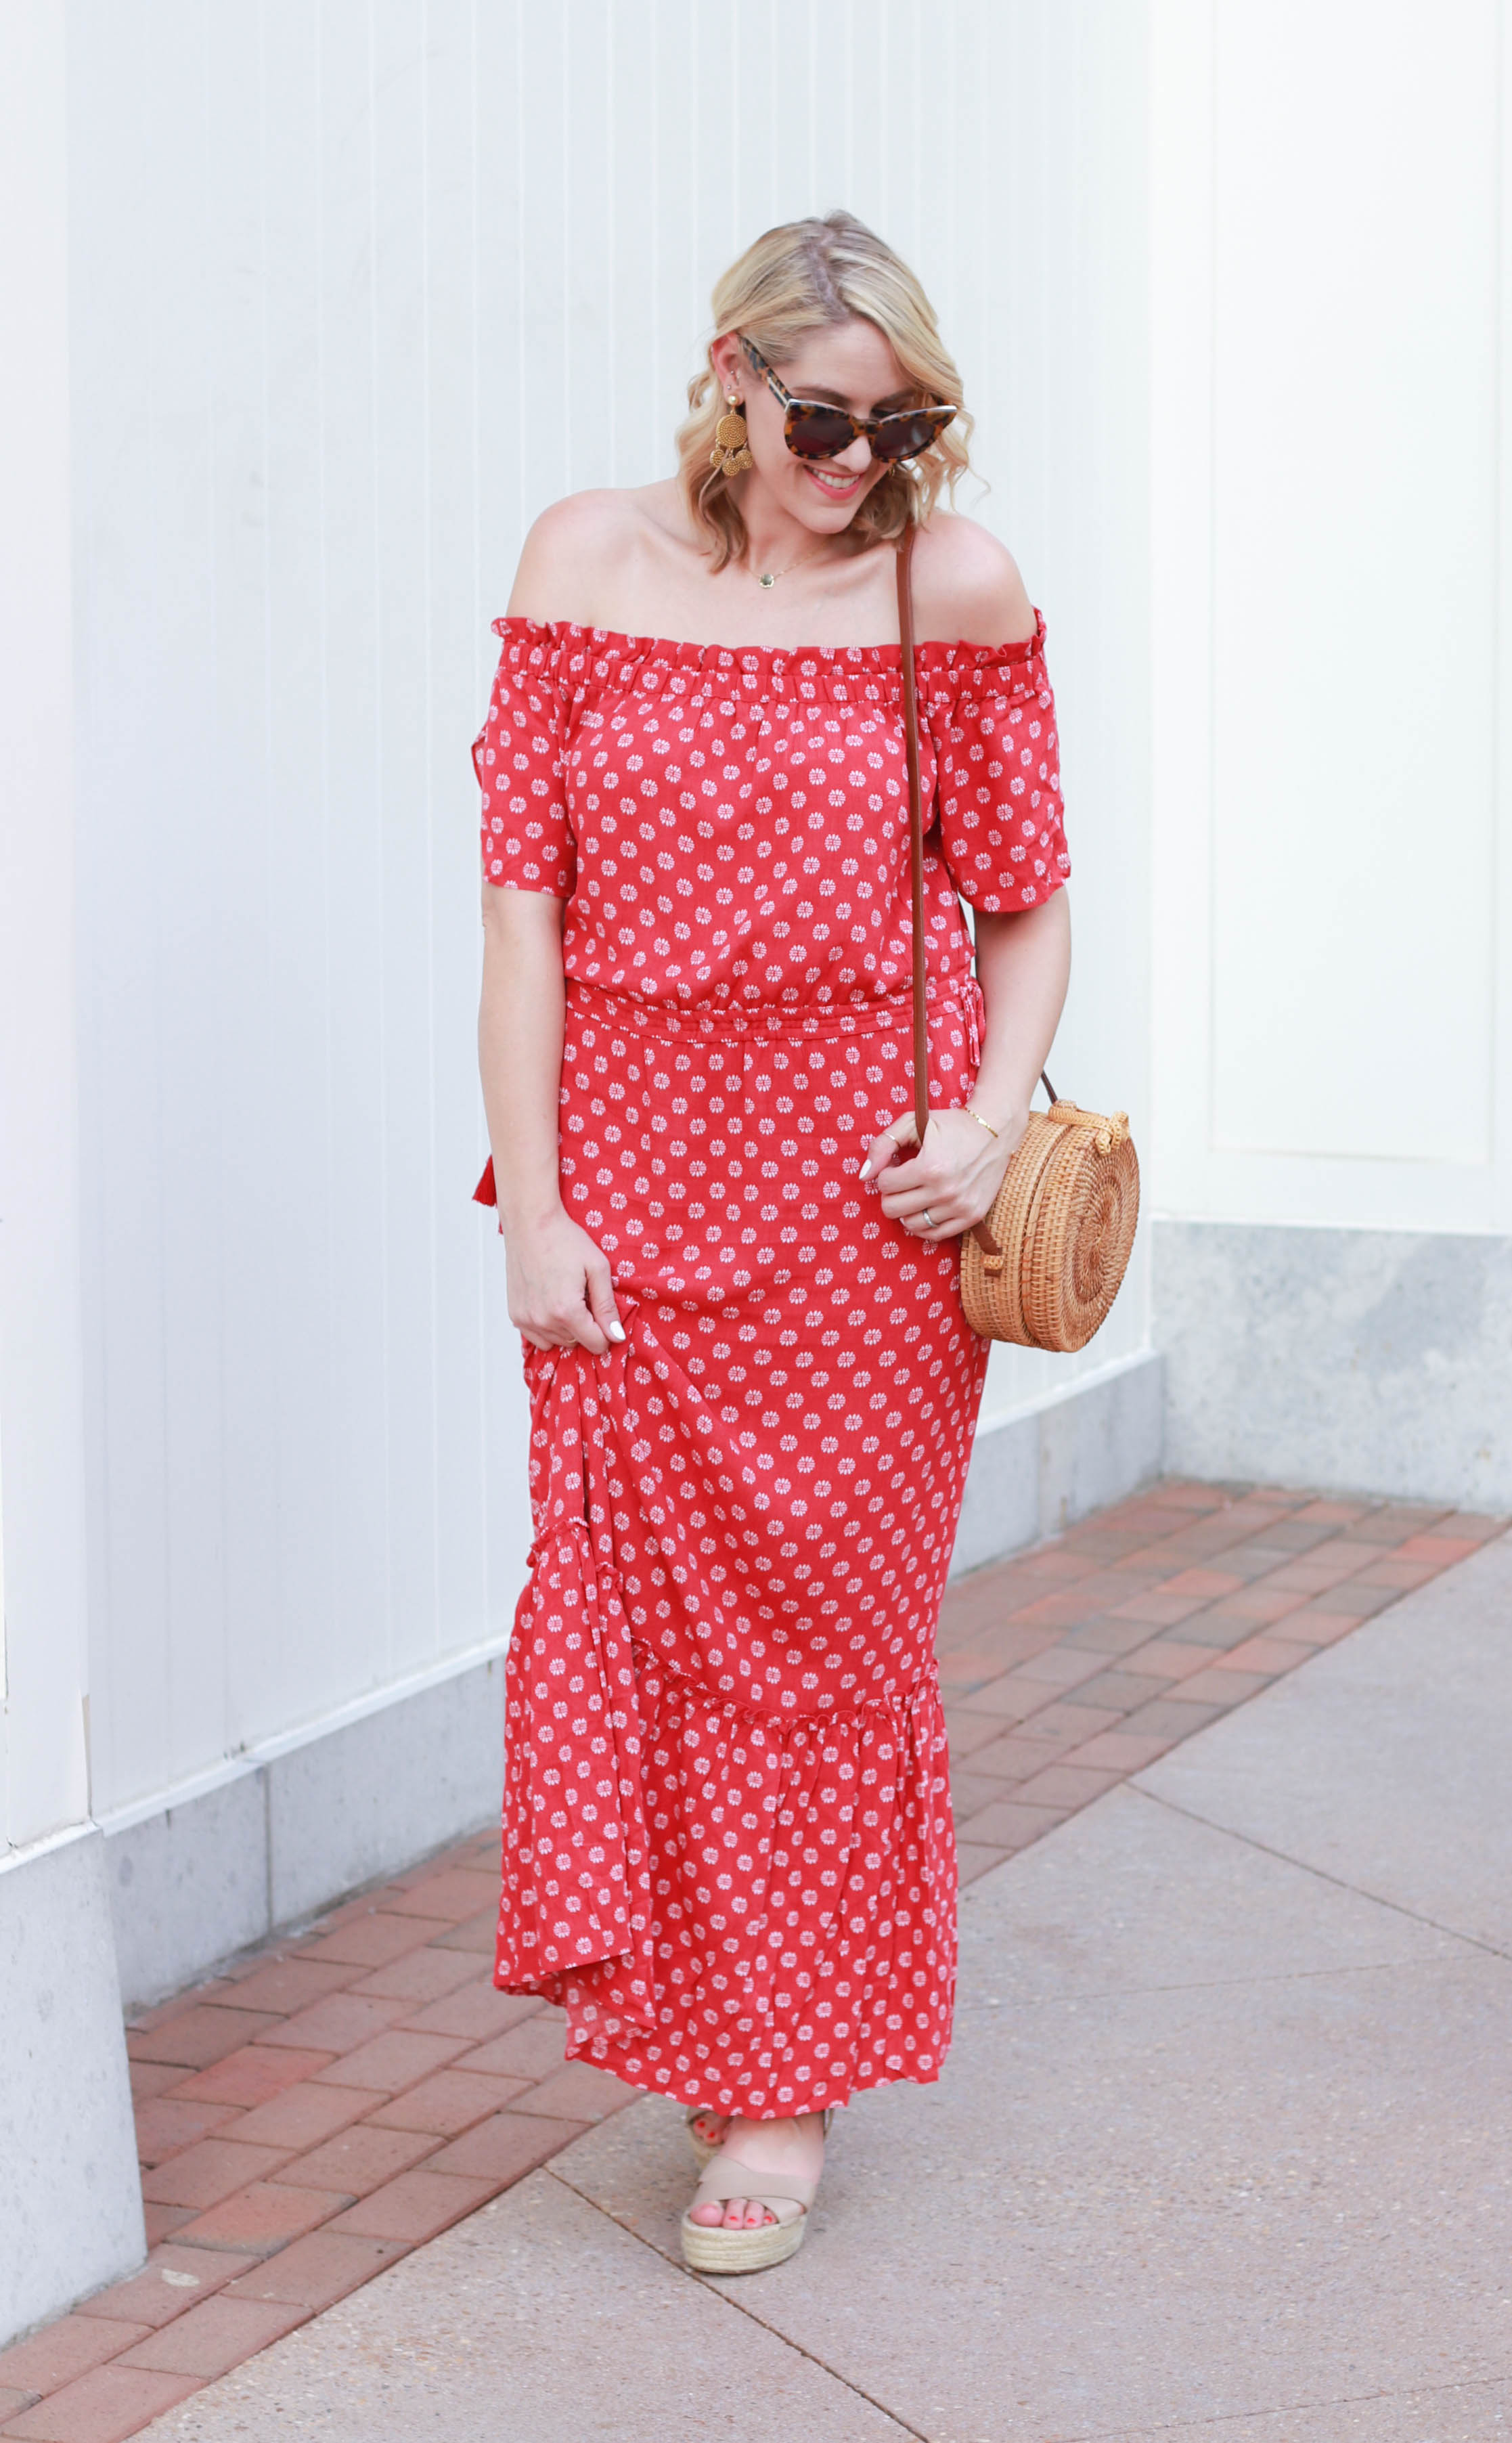 floral print boho maxi dress #summerfashion #bohostyle #bohodress #maxidress